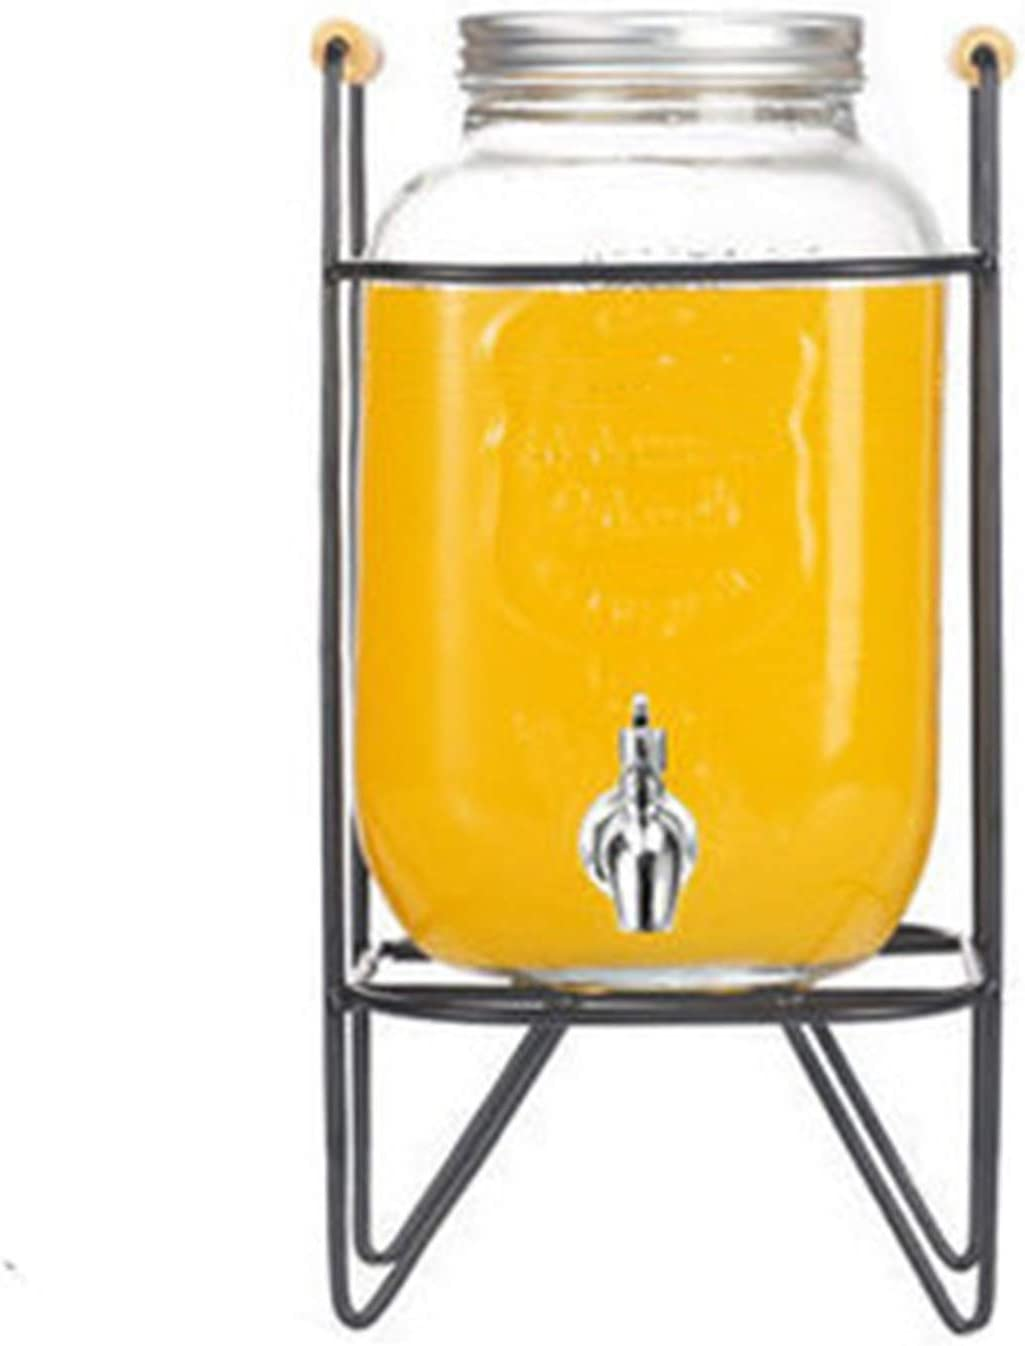 Juice High quality new Dispenser Glass Drinks Outdoor Picnic Mason Special price for a limited time Home